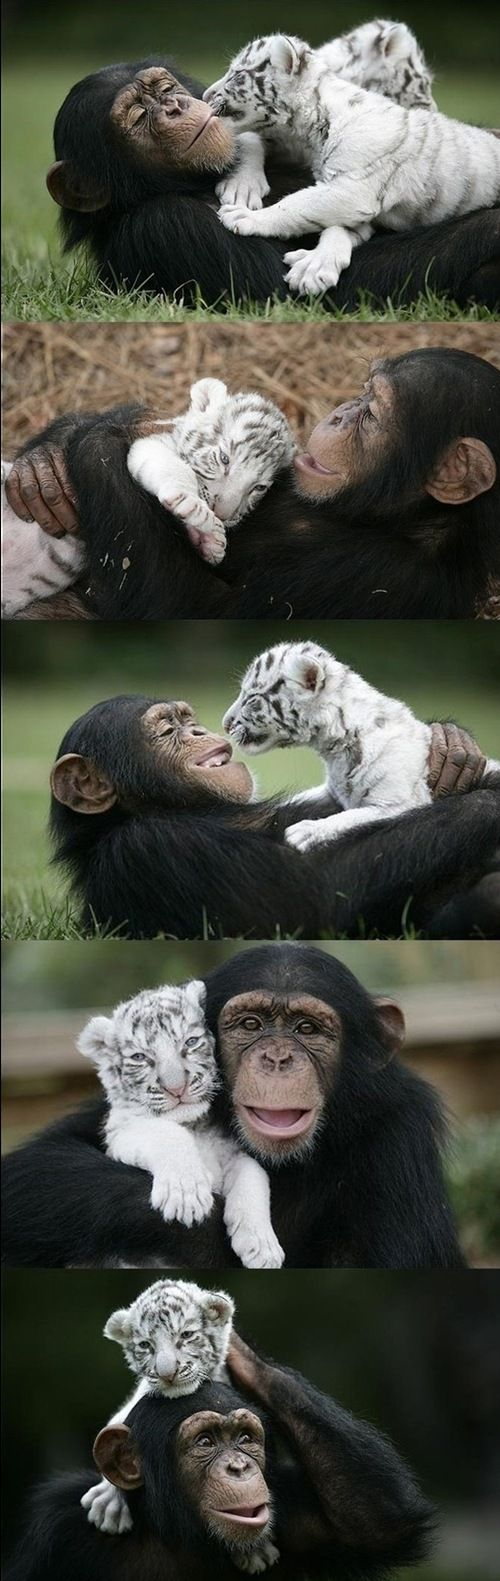 Dadgum it...now I need a monkey AND a tiger!!